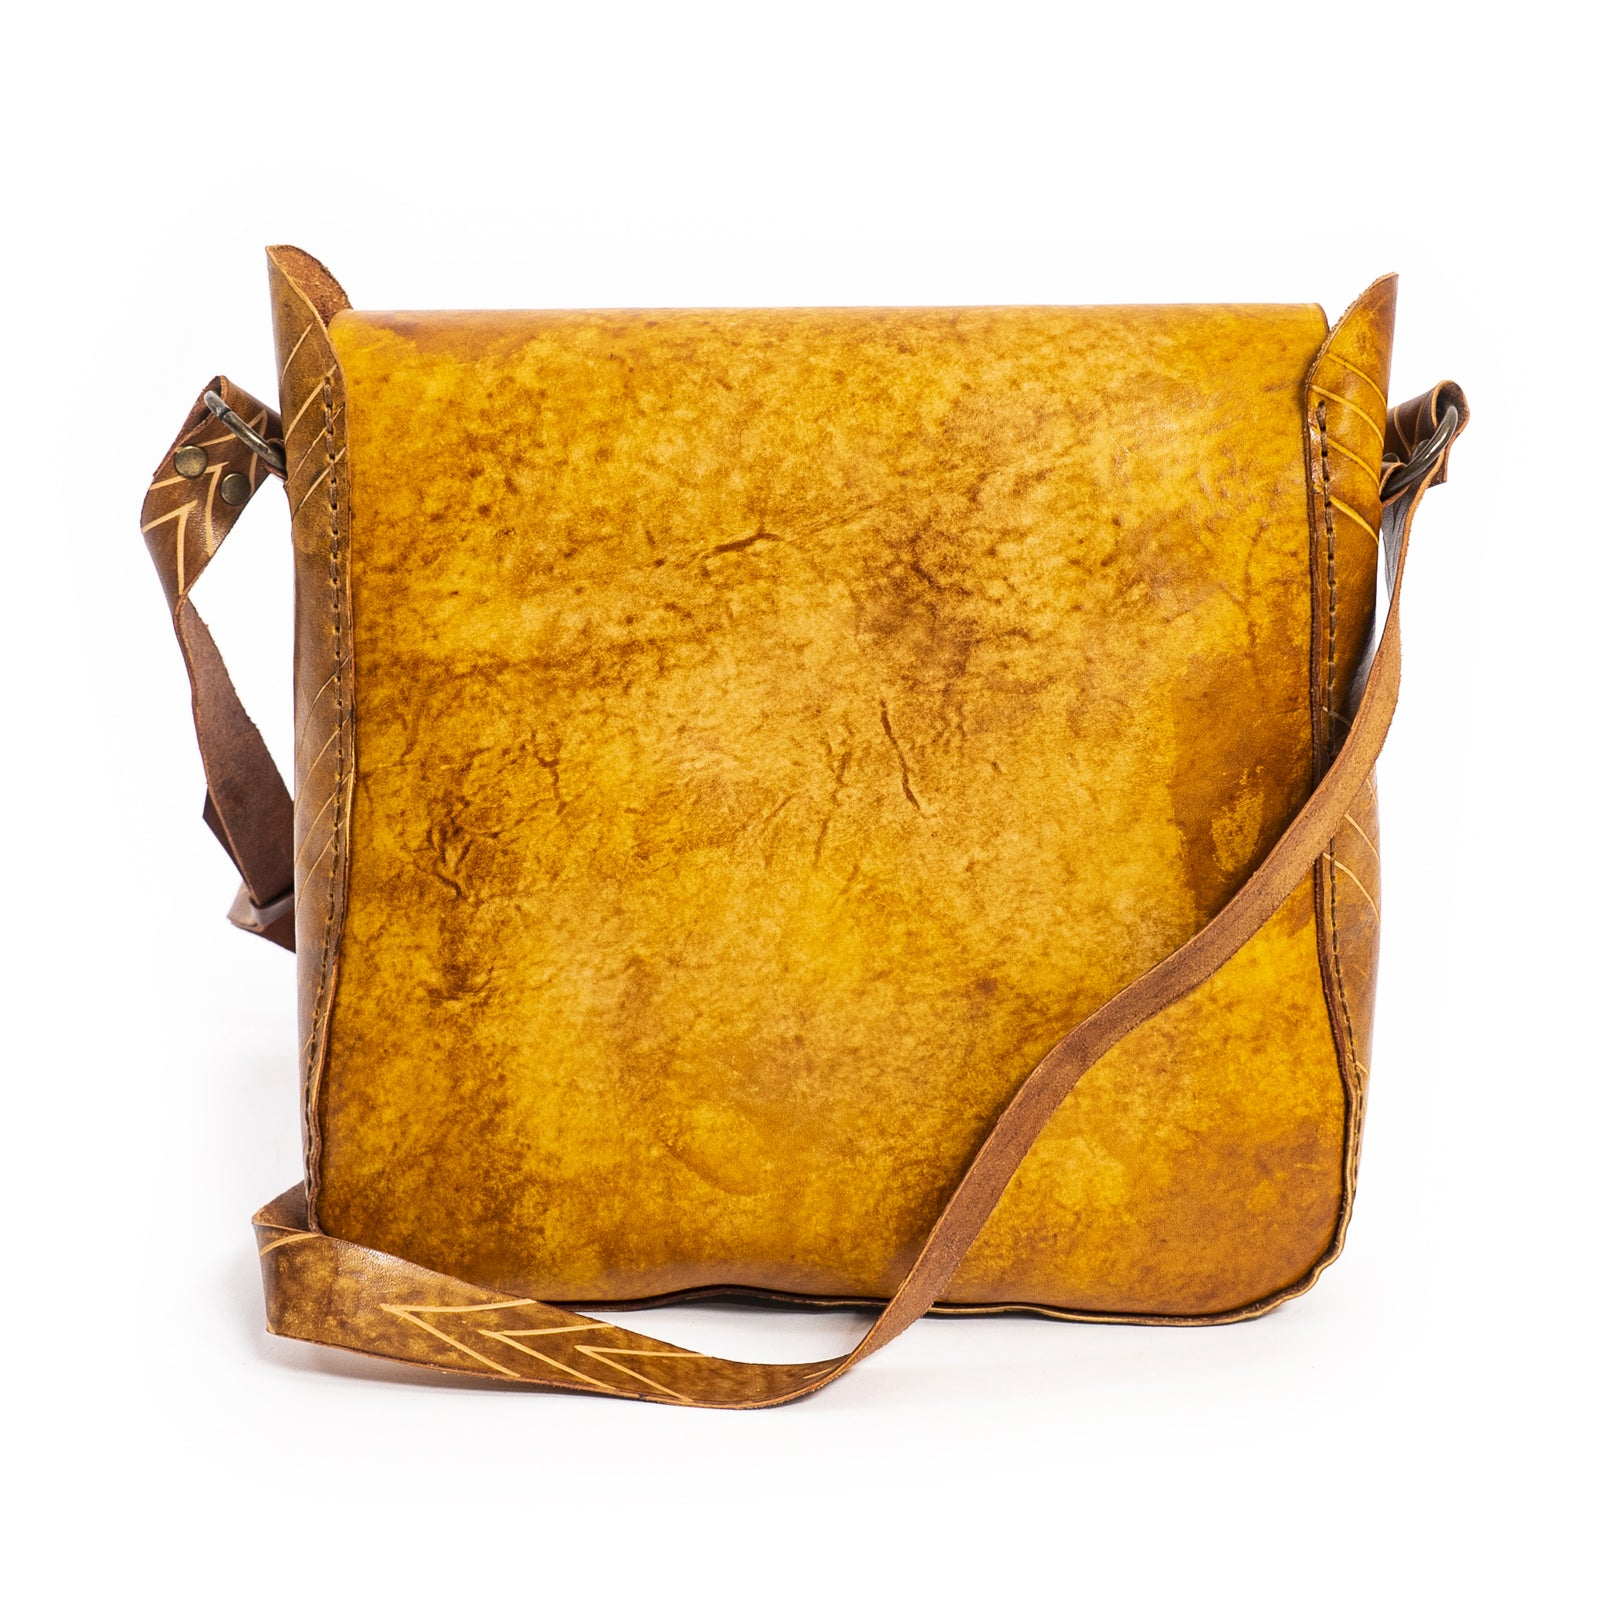 Derifix Figlefia Handmade Women's Leather Bag